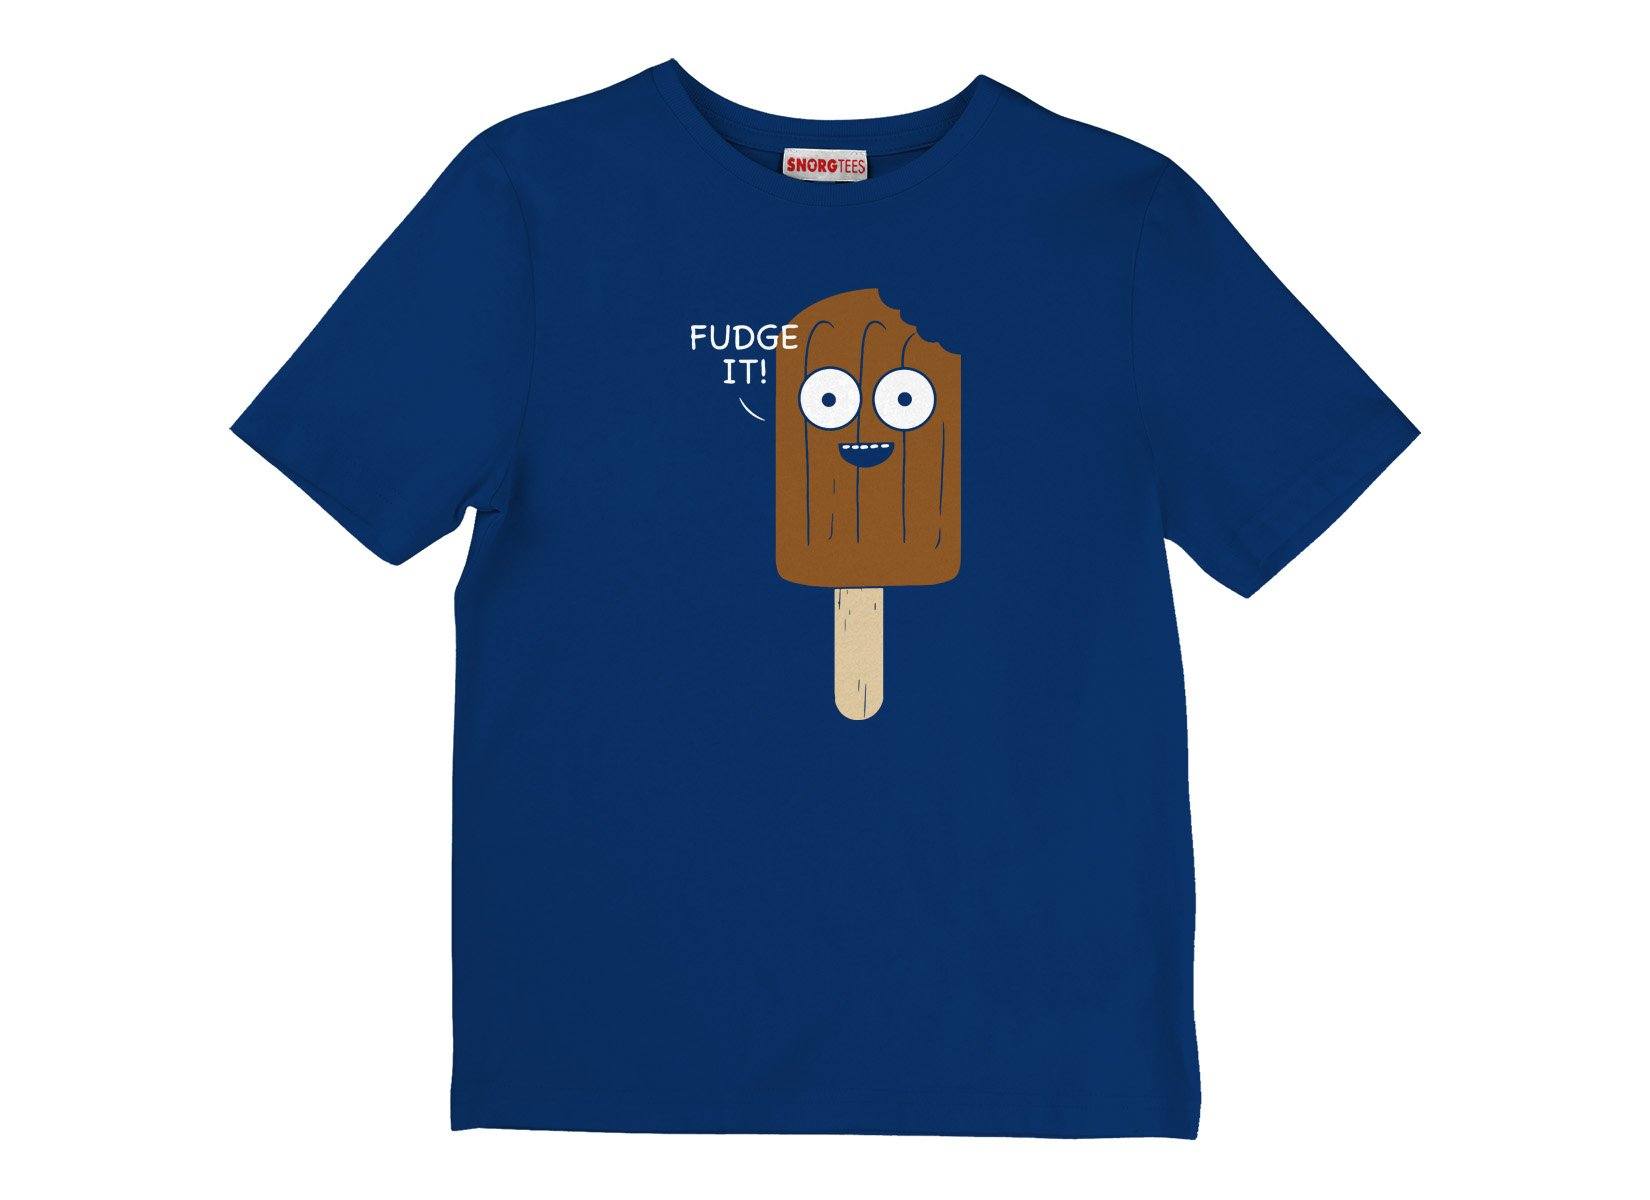 Fudge It! on Kids T-Shirt